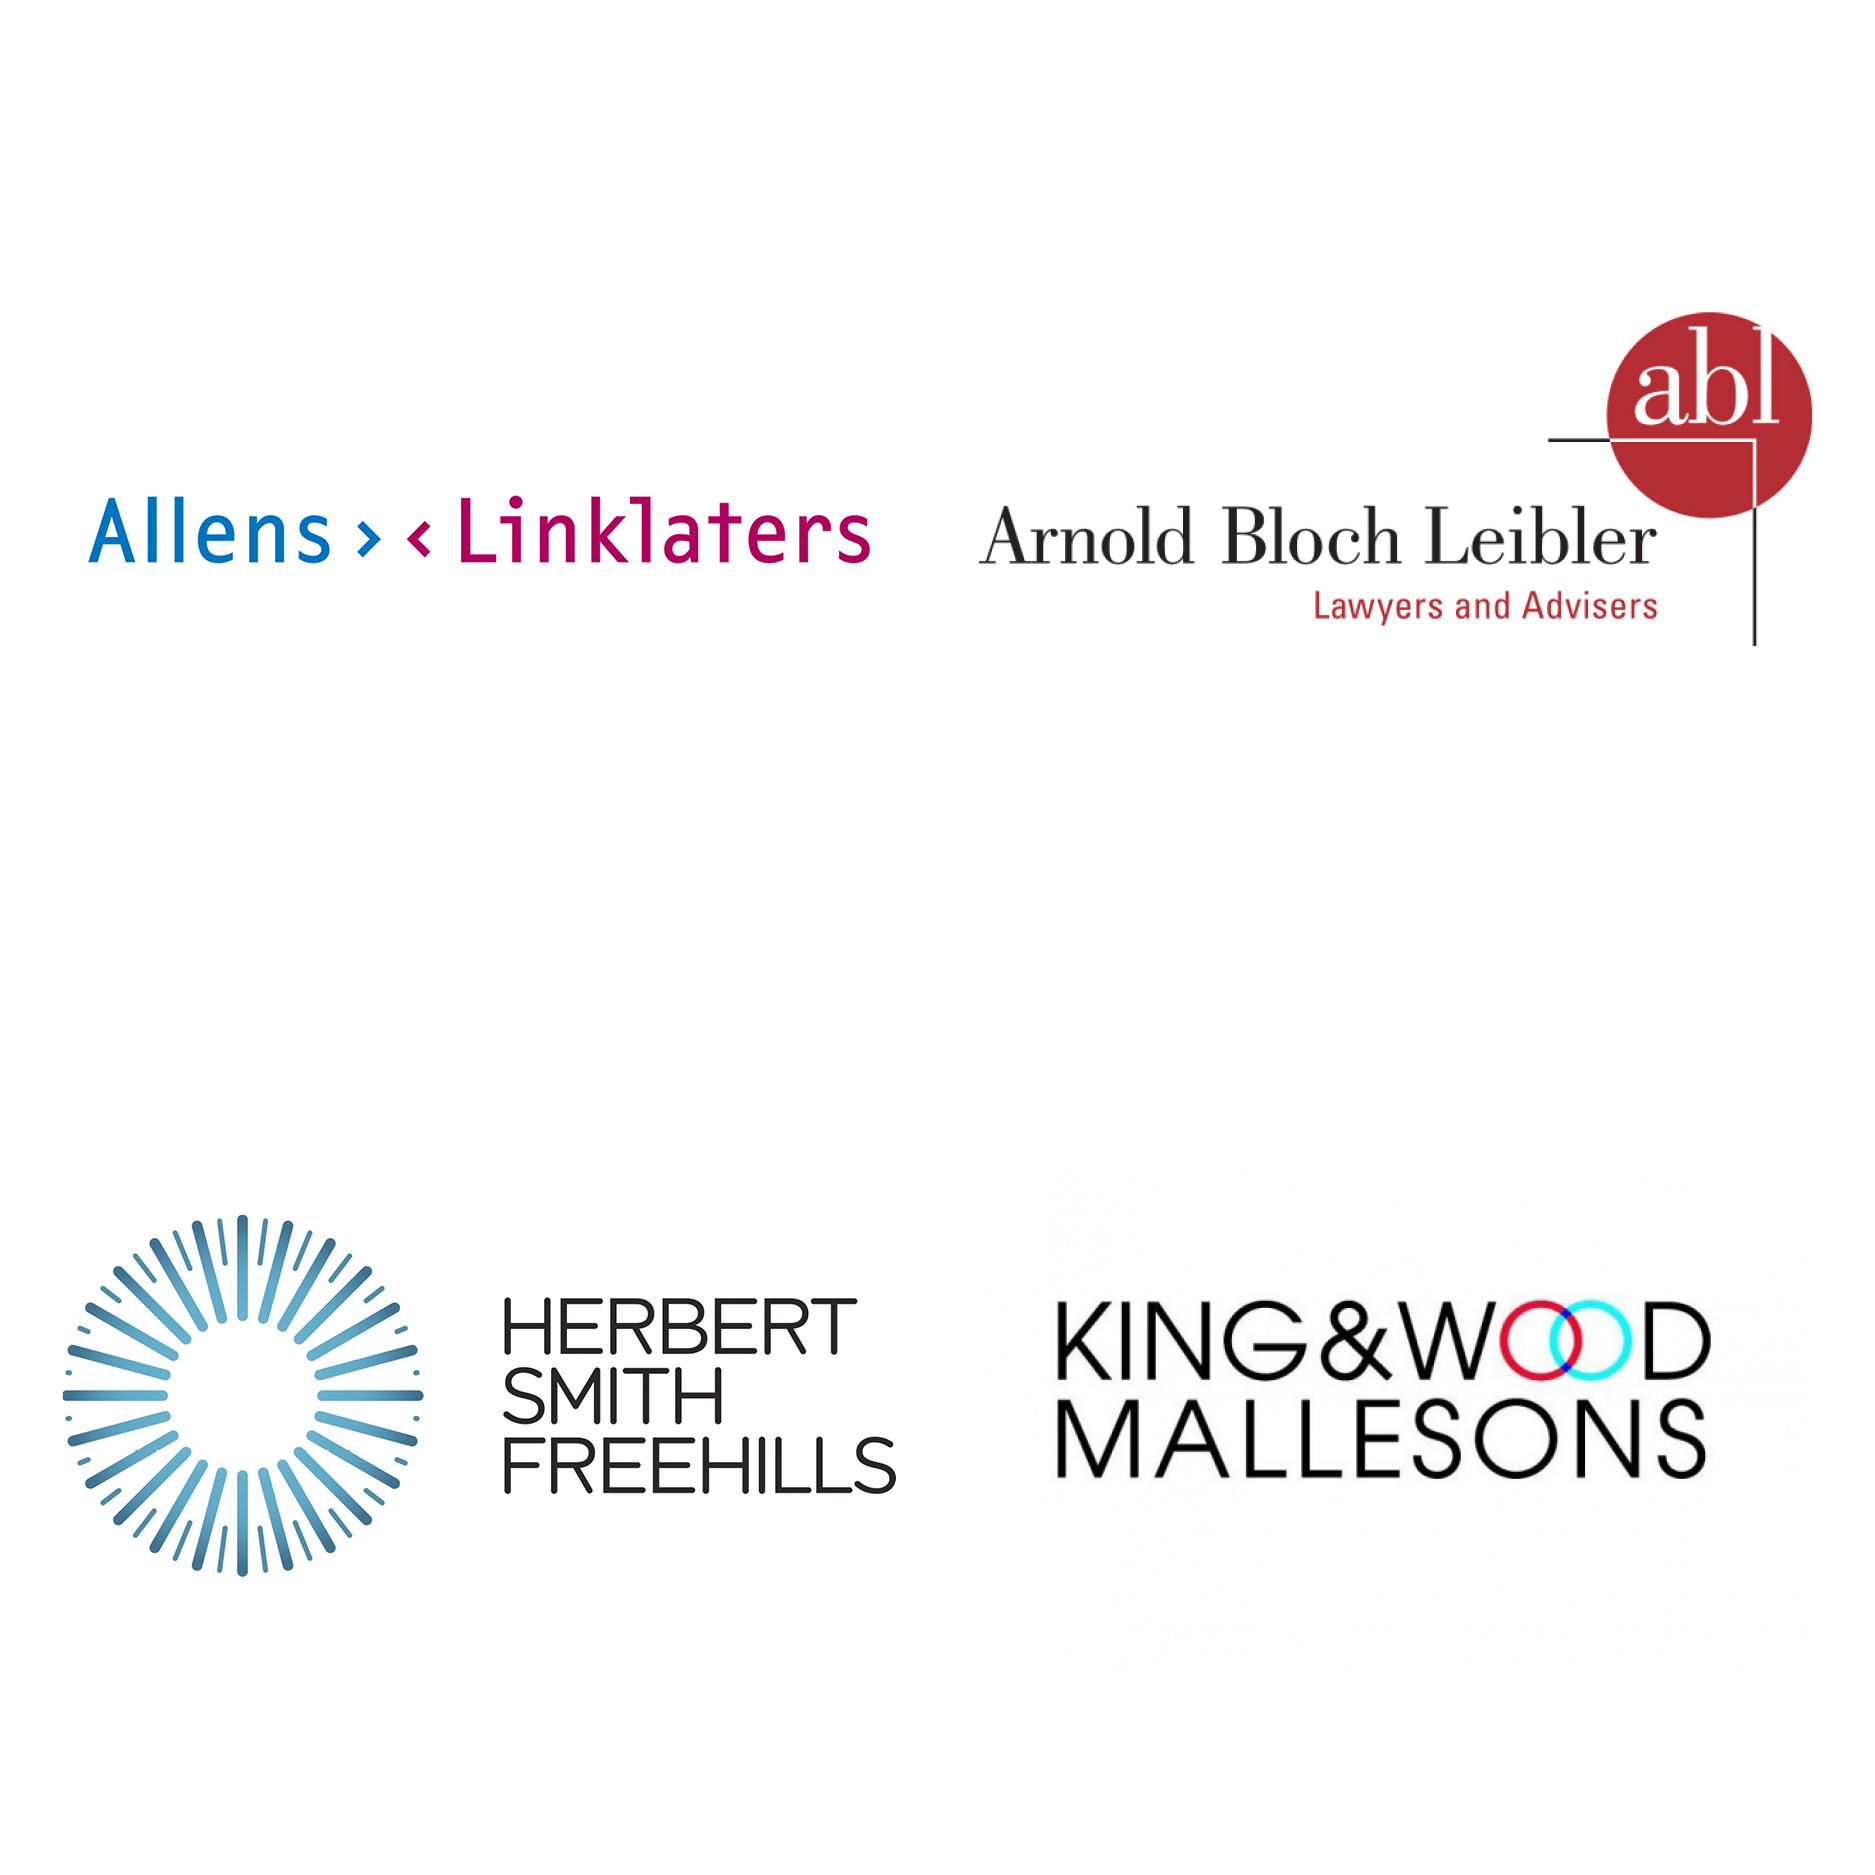 Law Review sponsors